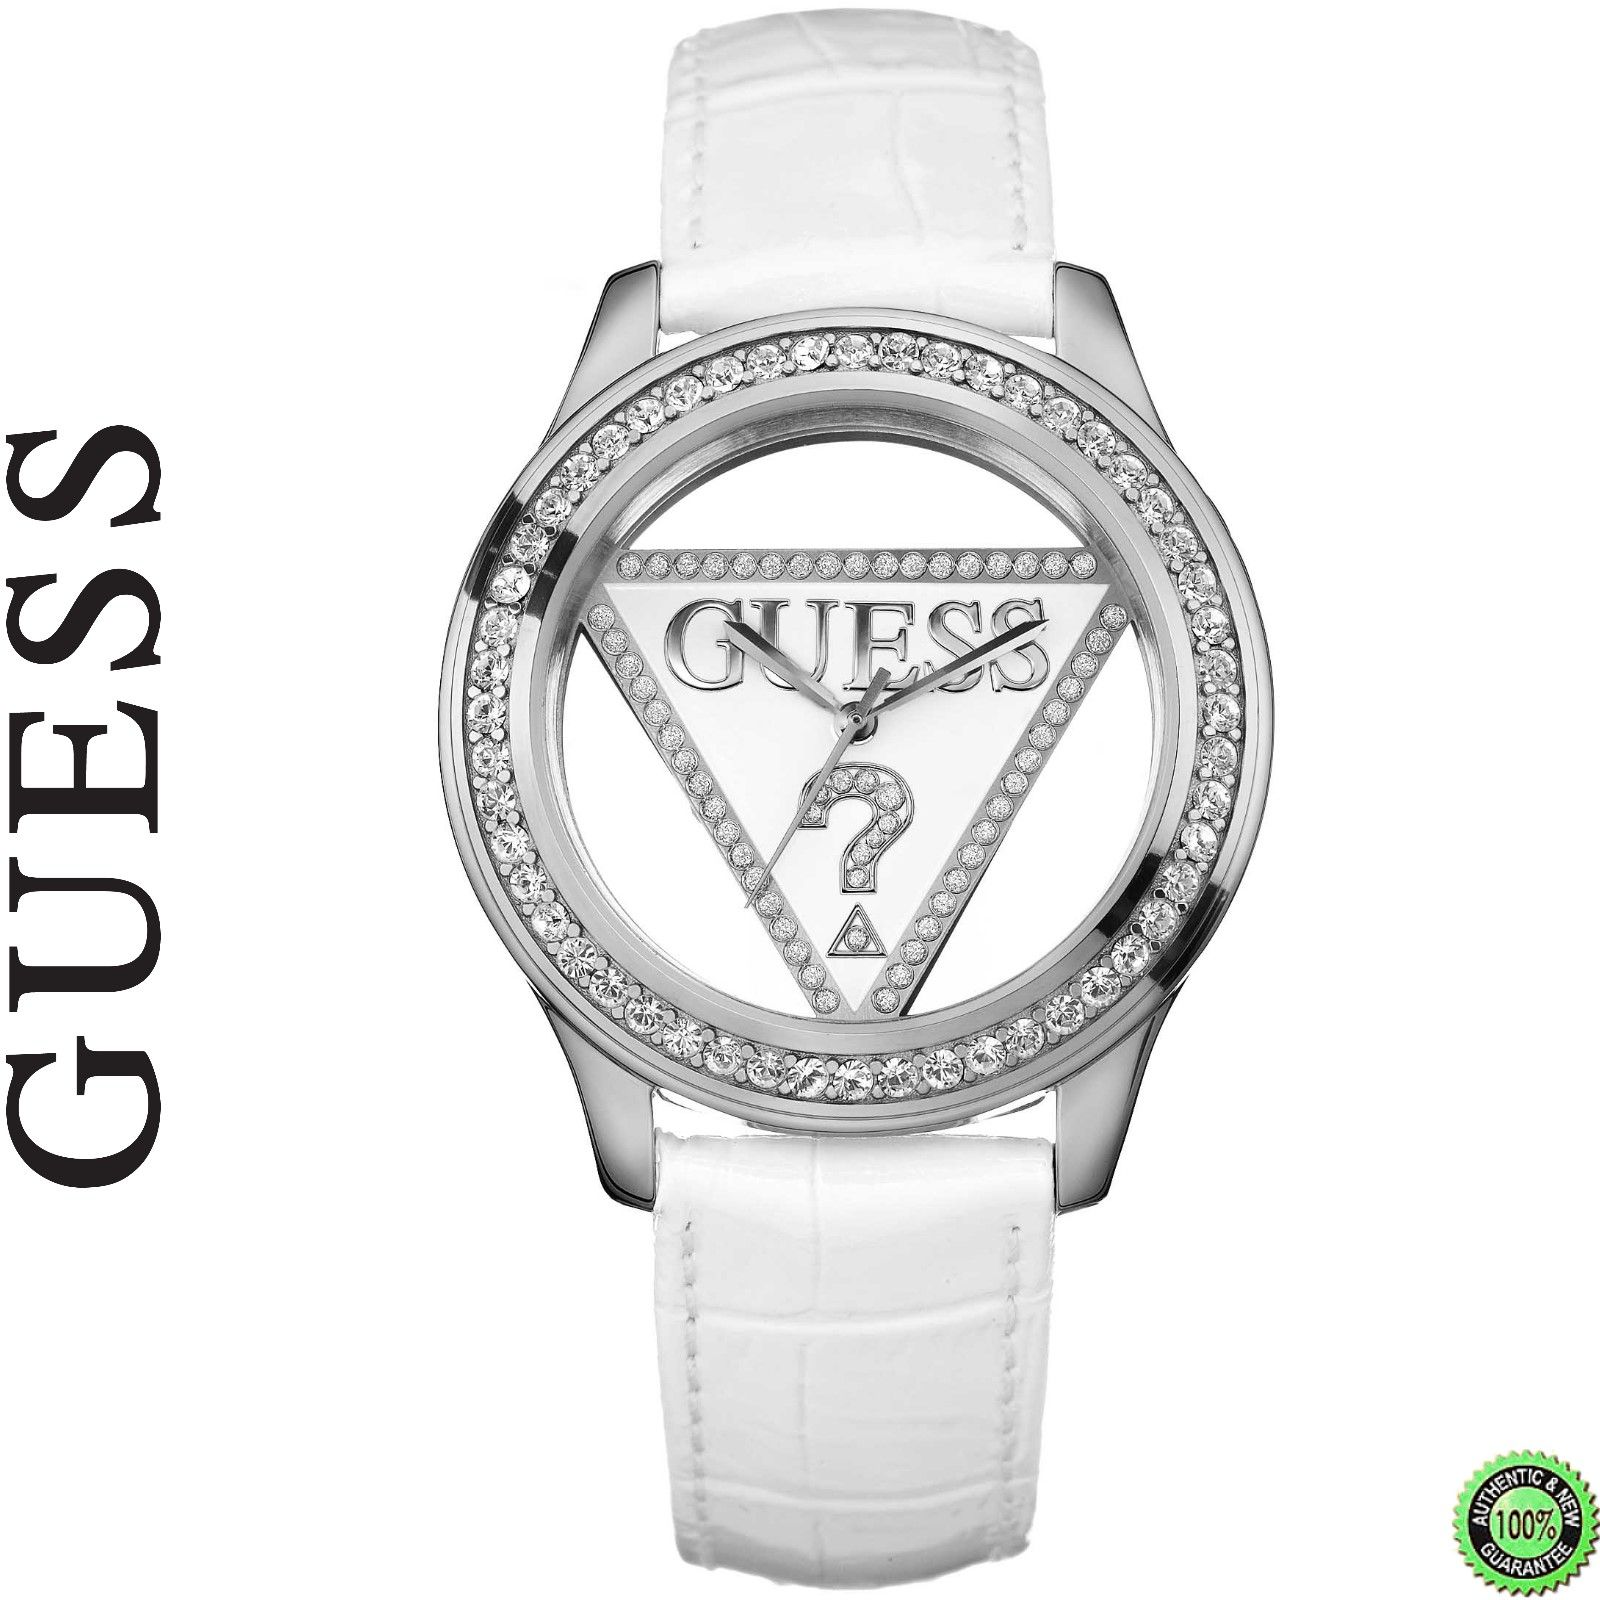 montre guess femme bracelet cuir blanc et cadran transparent argent avec strass montre. Black Bedroom Furniture Sets. Home Design Ideas